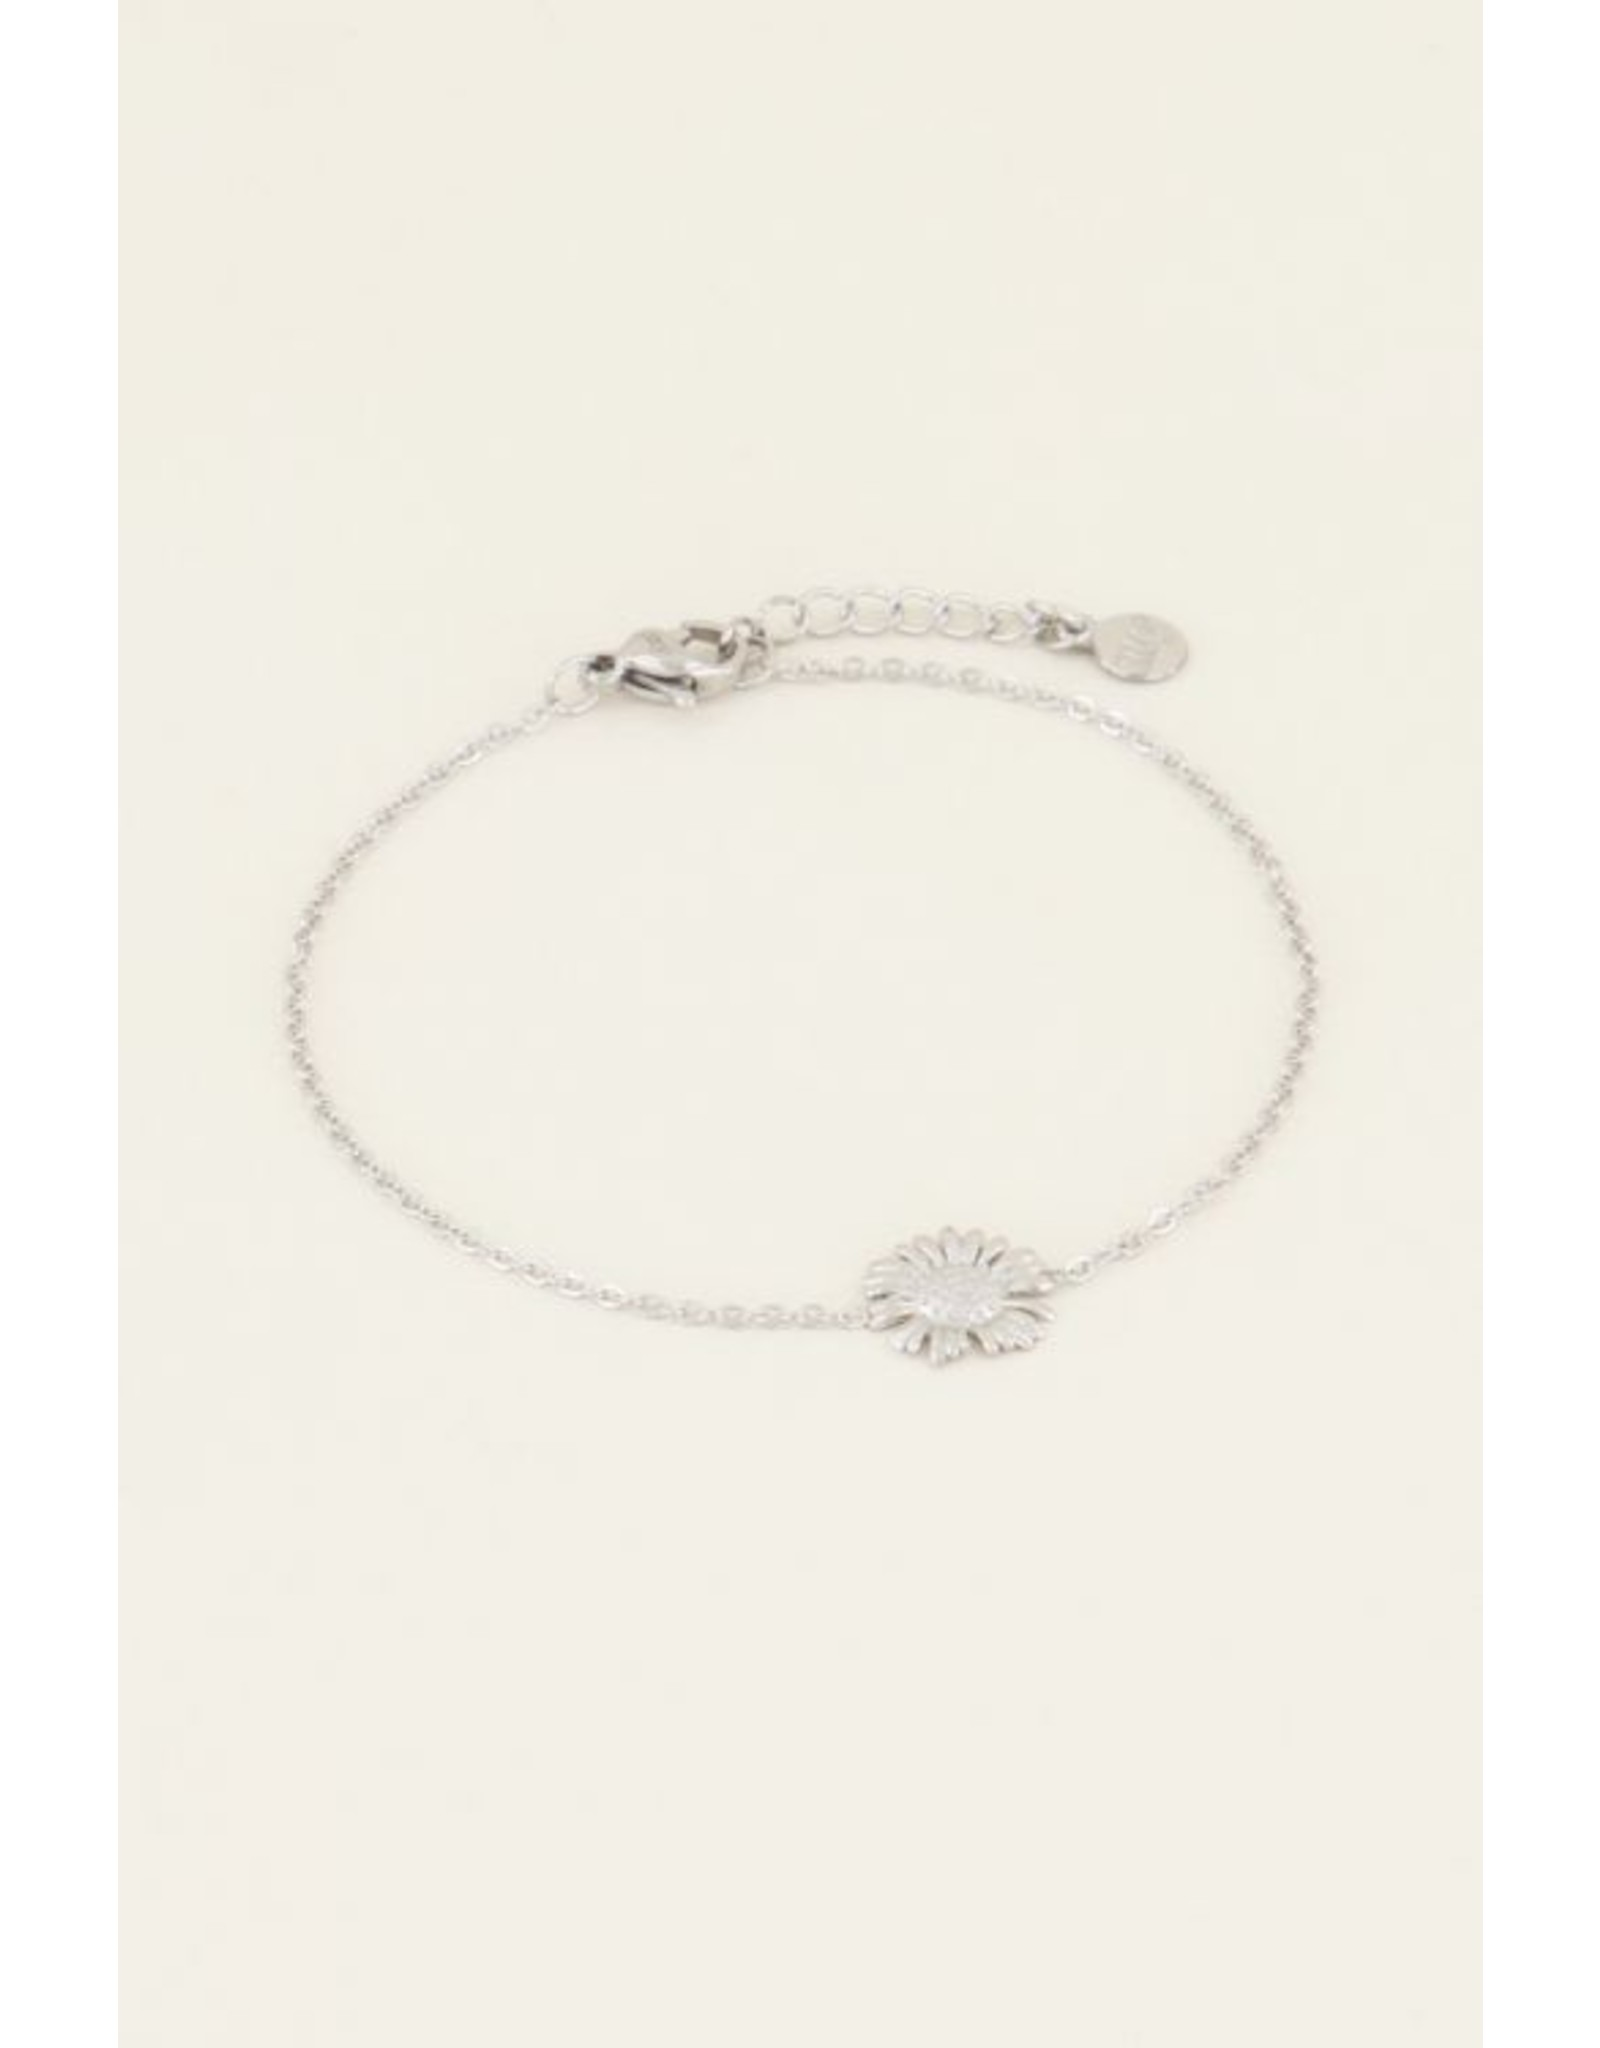 Armband madeliefje zilver